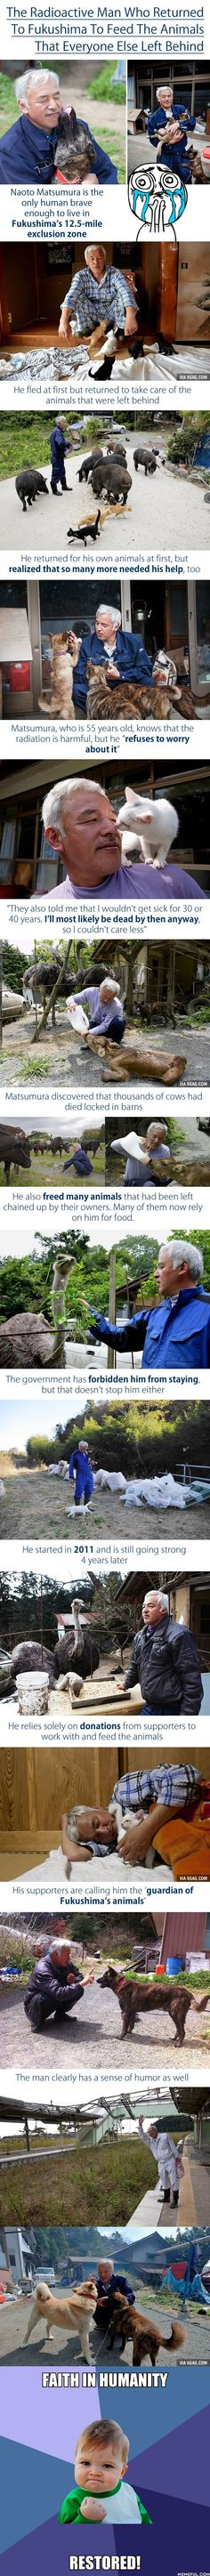 """""""The Guardian of Fukushima's Animals"""" This man is amazing! I am so glad that those animals have someone looking out for them <3"""